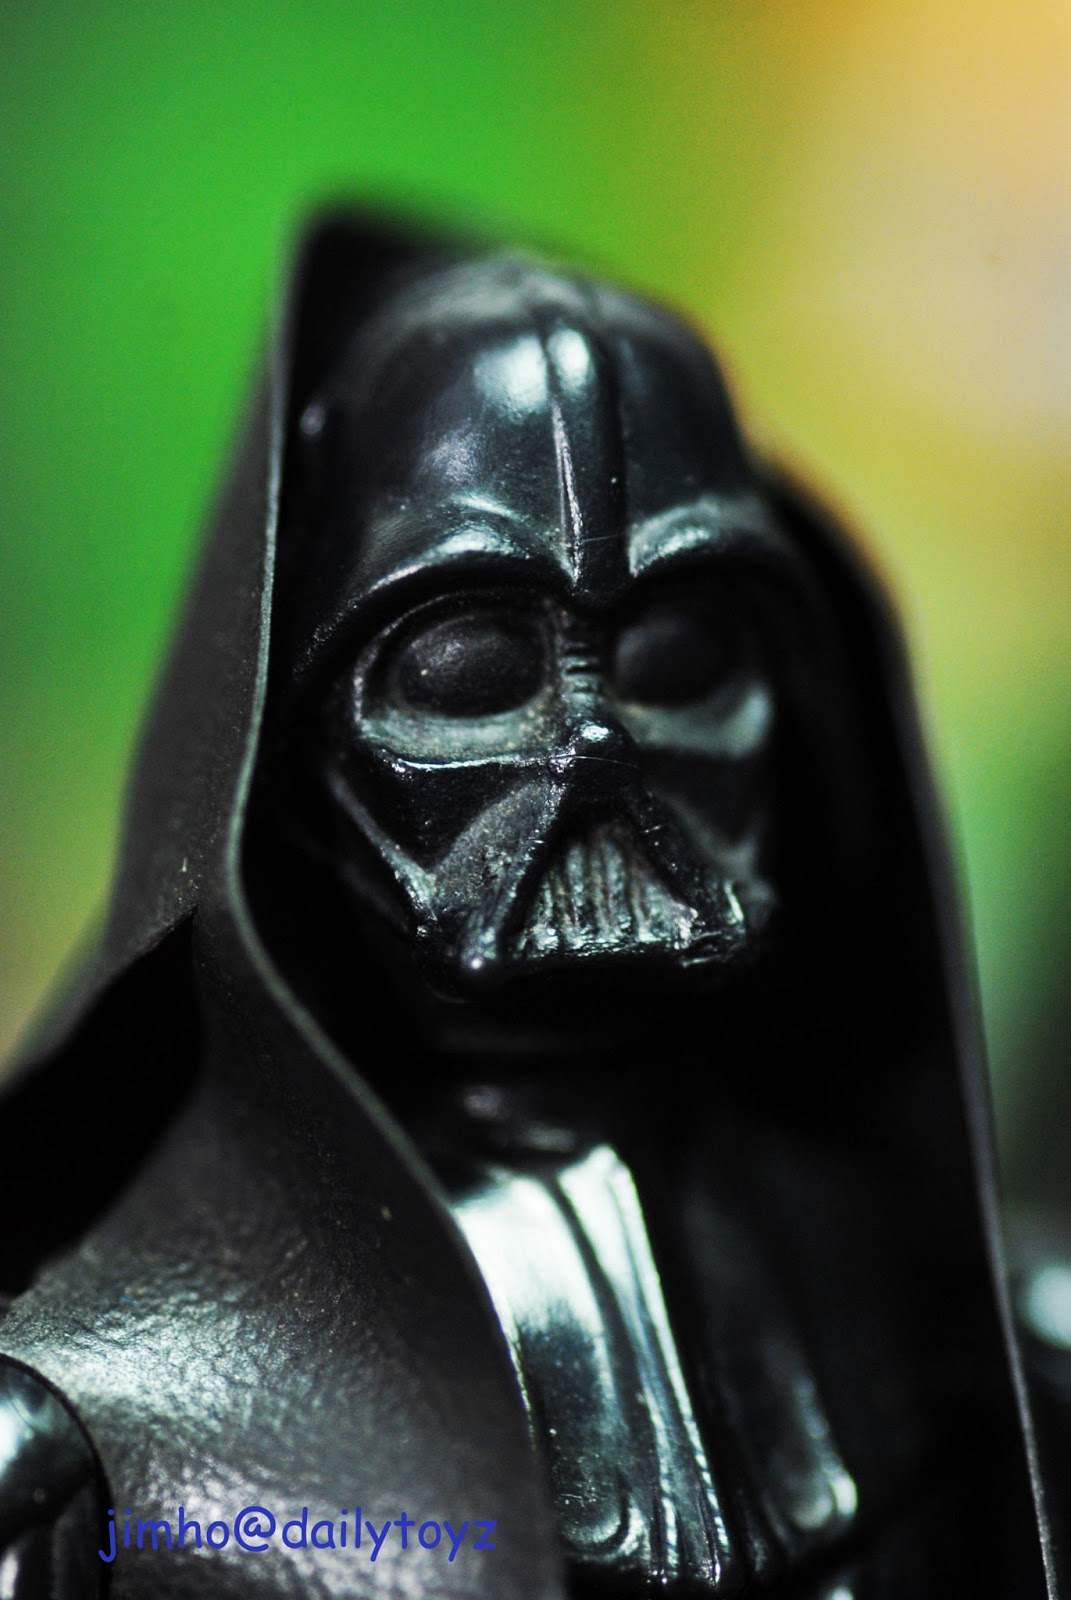 vader personals Search titles only has image posted today bundle duplicates include nearby areas bakersfield, ca (bak) fresno / madera (fre) hanford-corcoran (hnf.